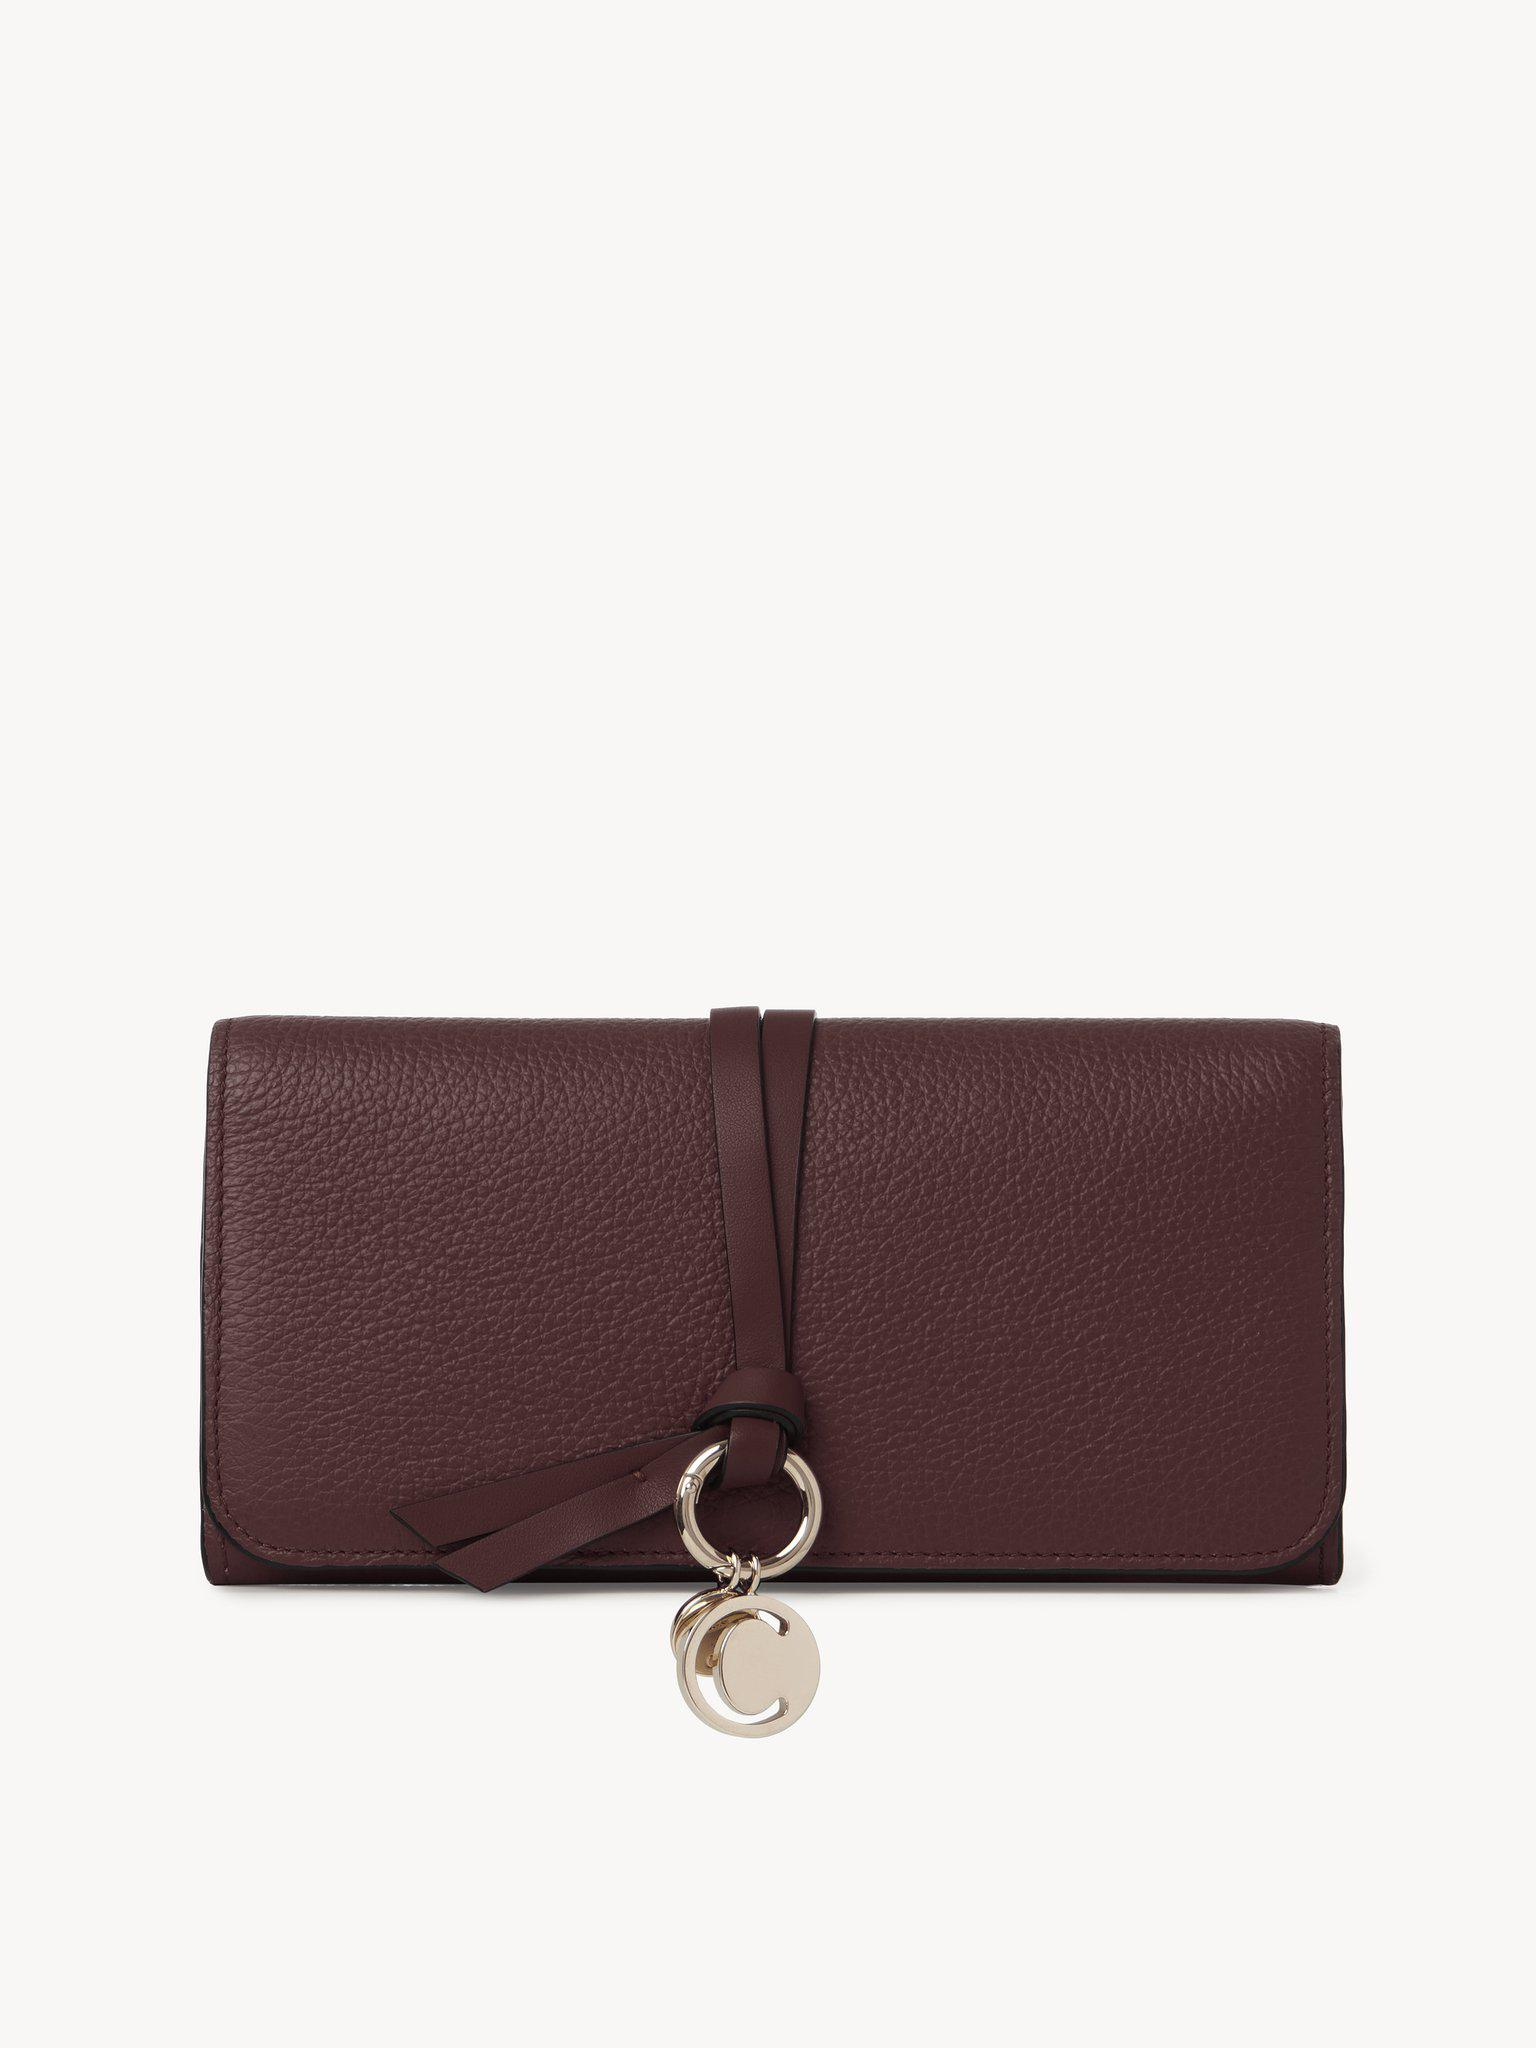 ALPHABET WALLET WITH FLAP